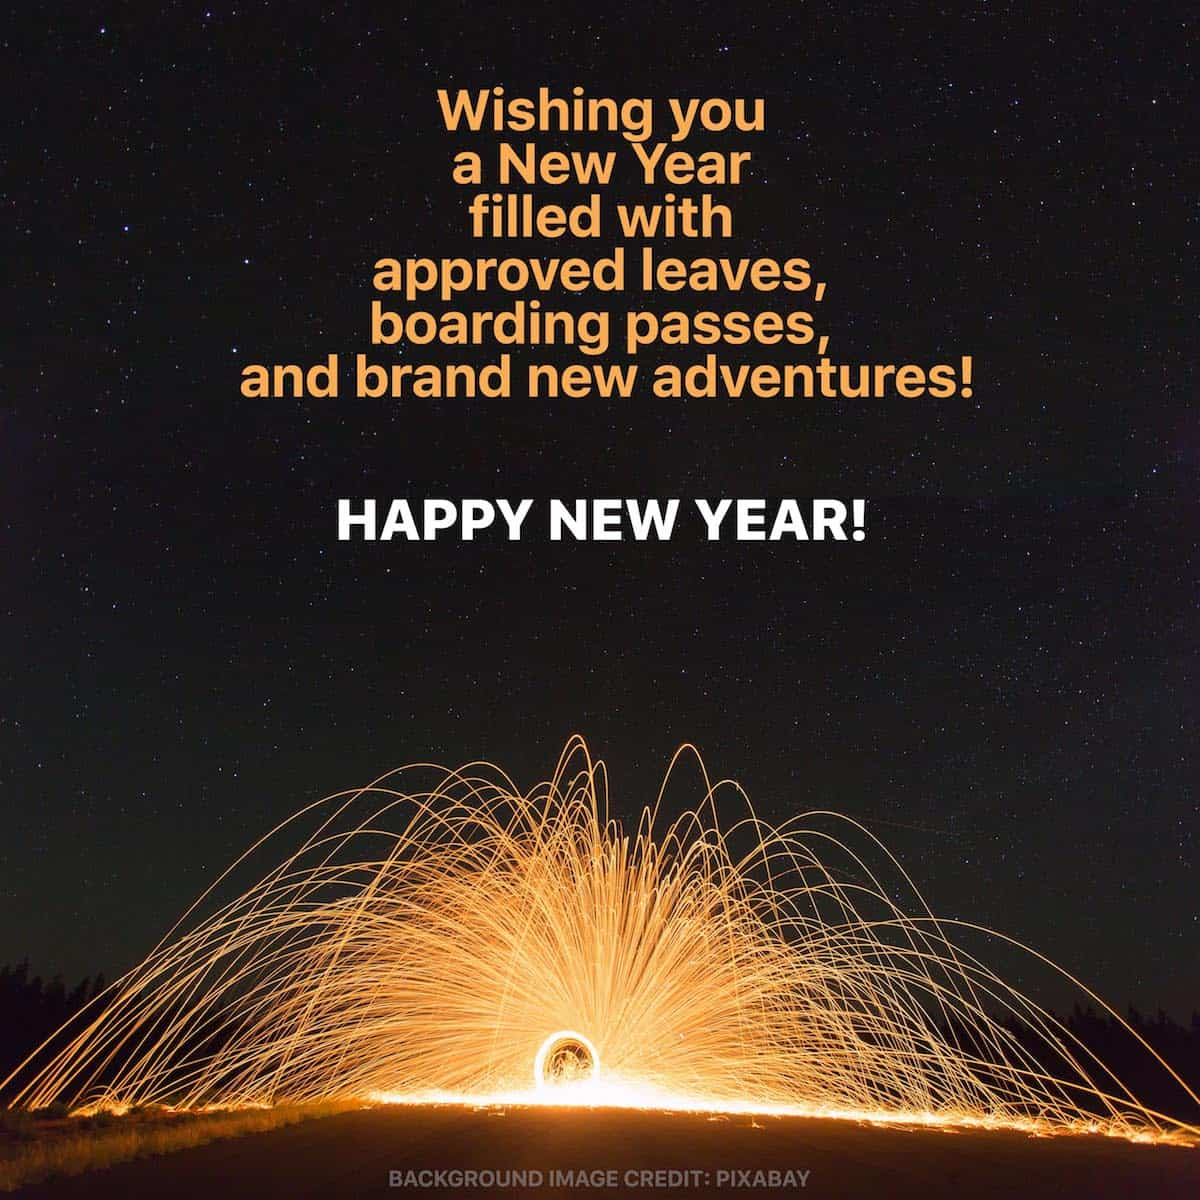 12 new year quotes and greetings for travelers the poor traveler wishing you a new year filled with approved leaves boarding passes and brand new adventures m4hsunfo